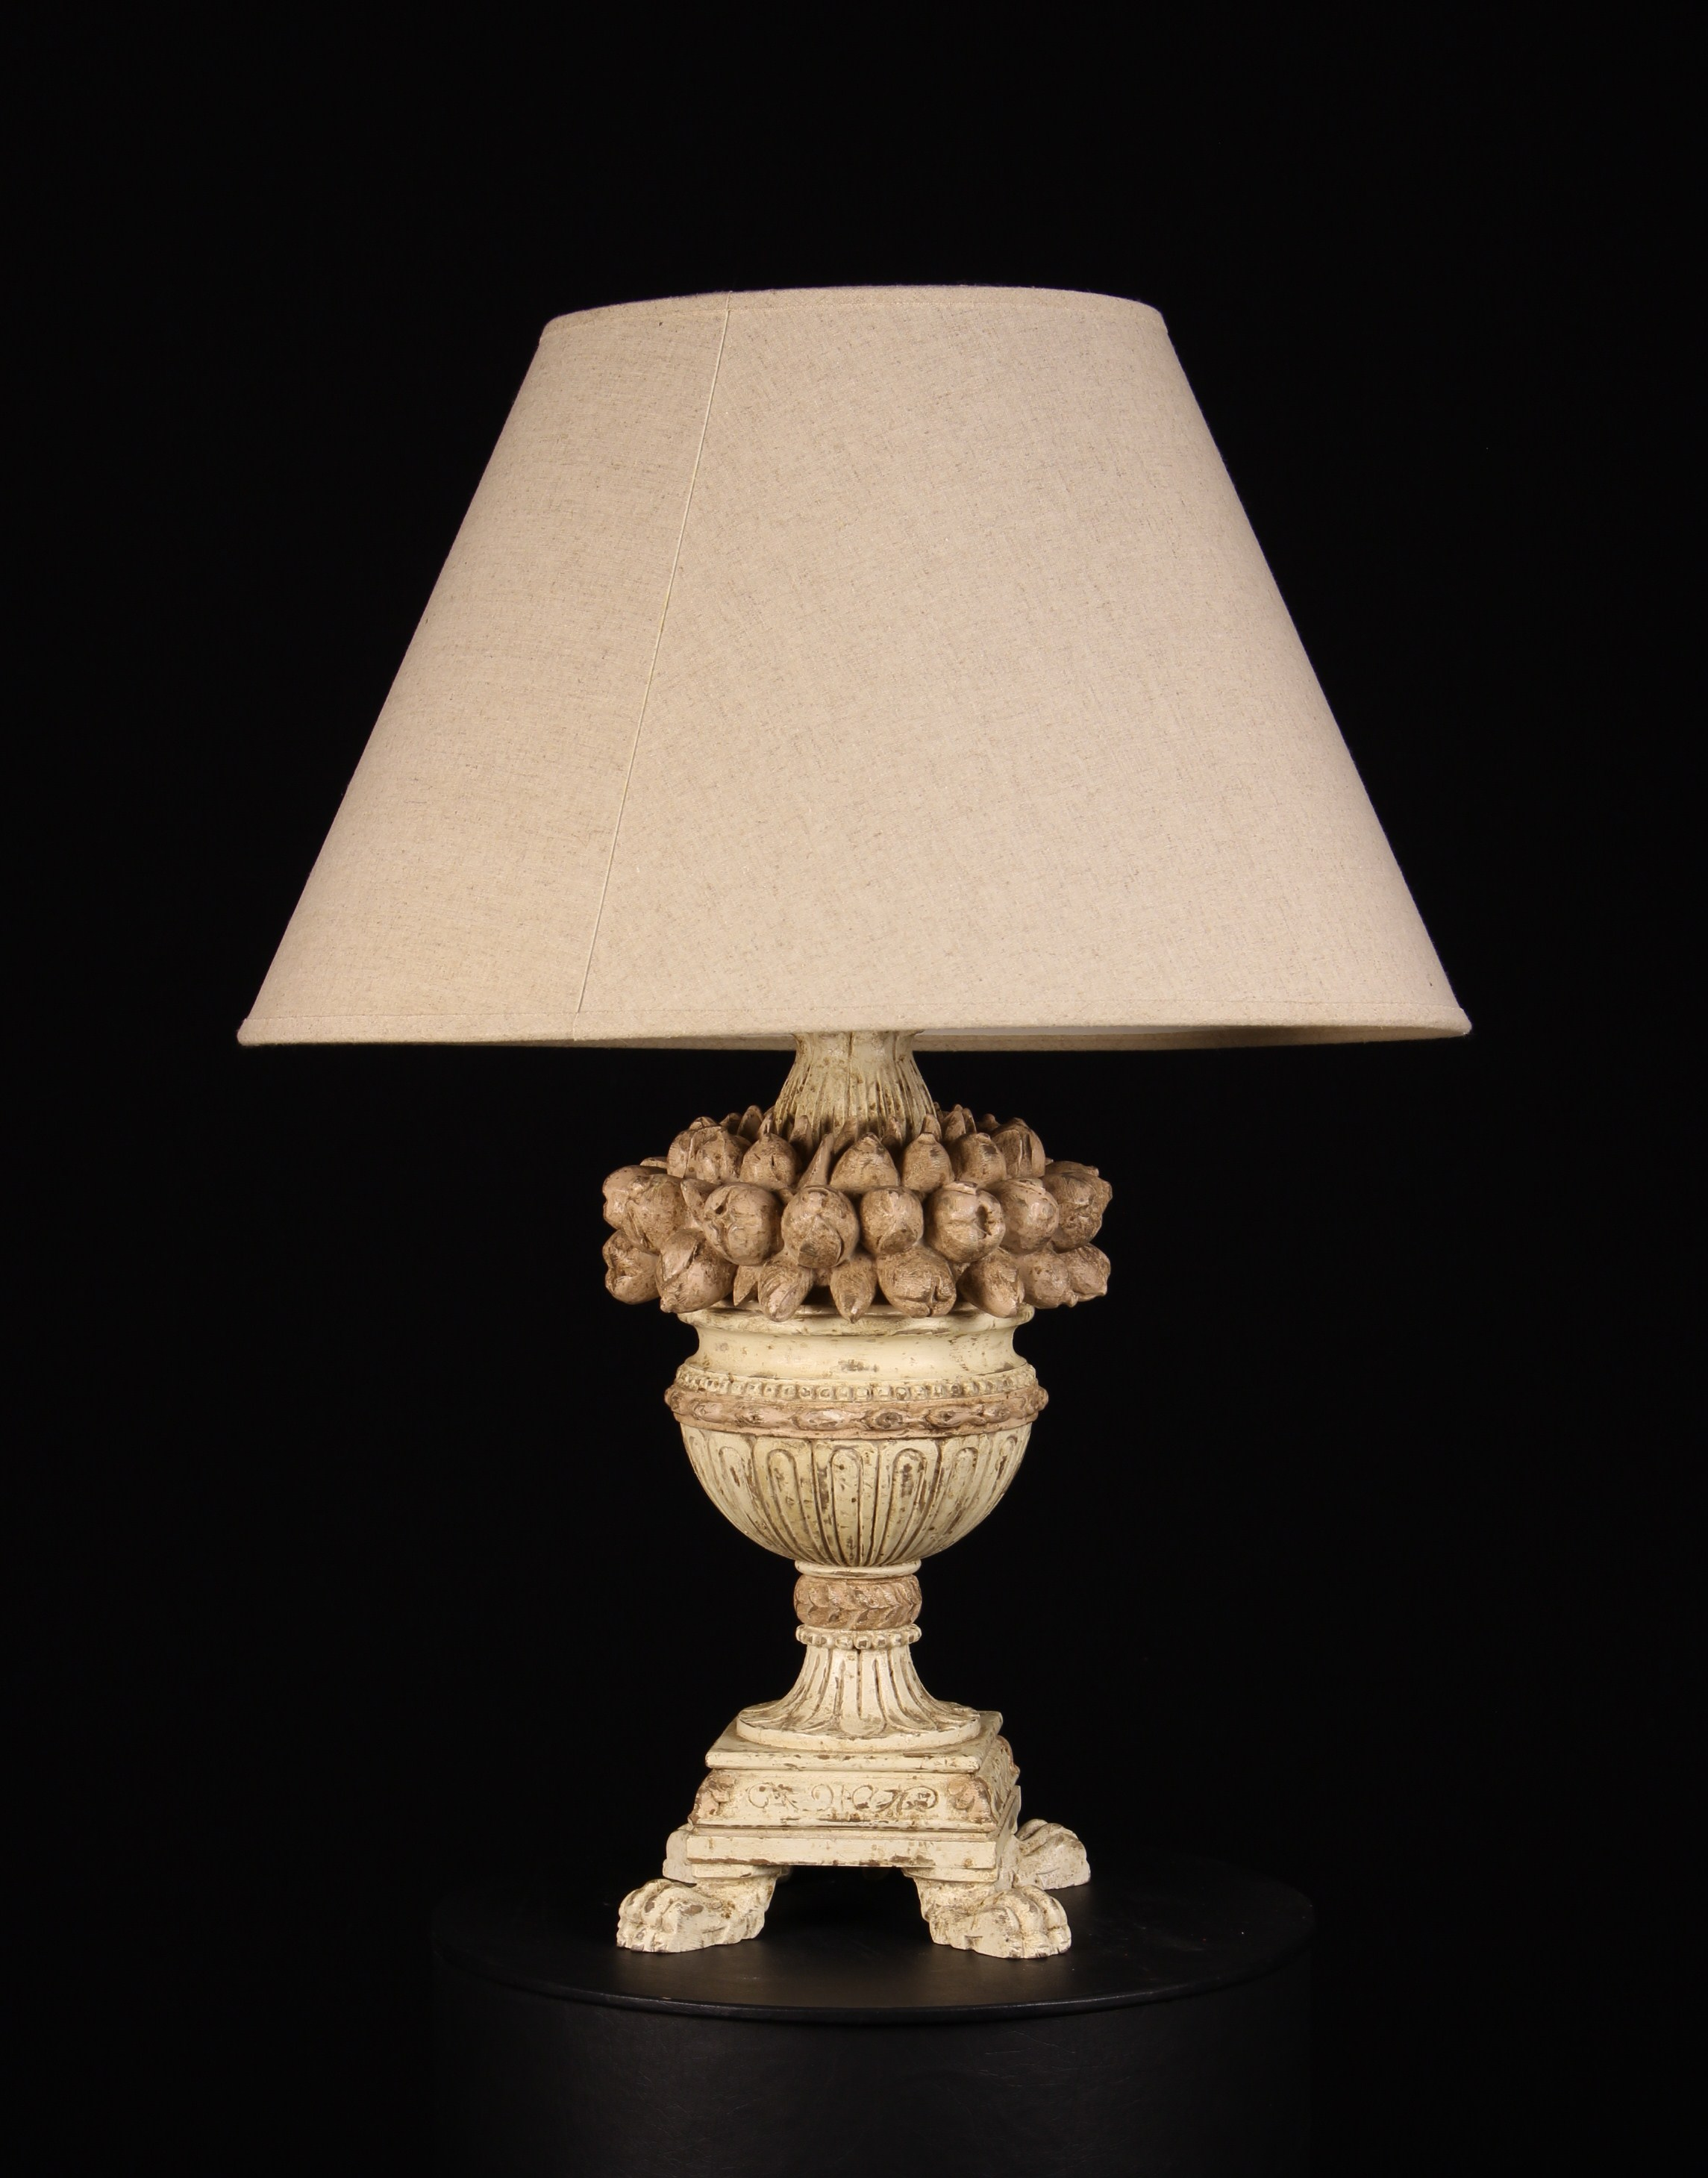 A Decorative Wooden Table Lamp with distressed white paint-work and an ecru linen shade.